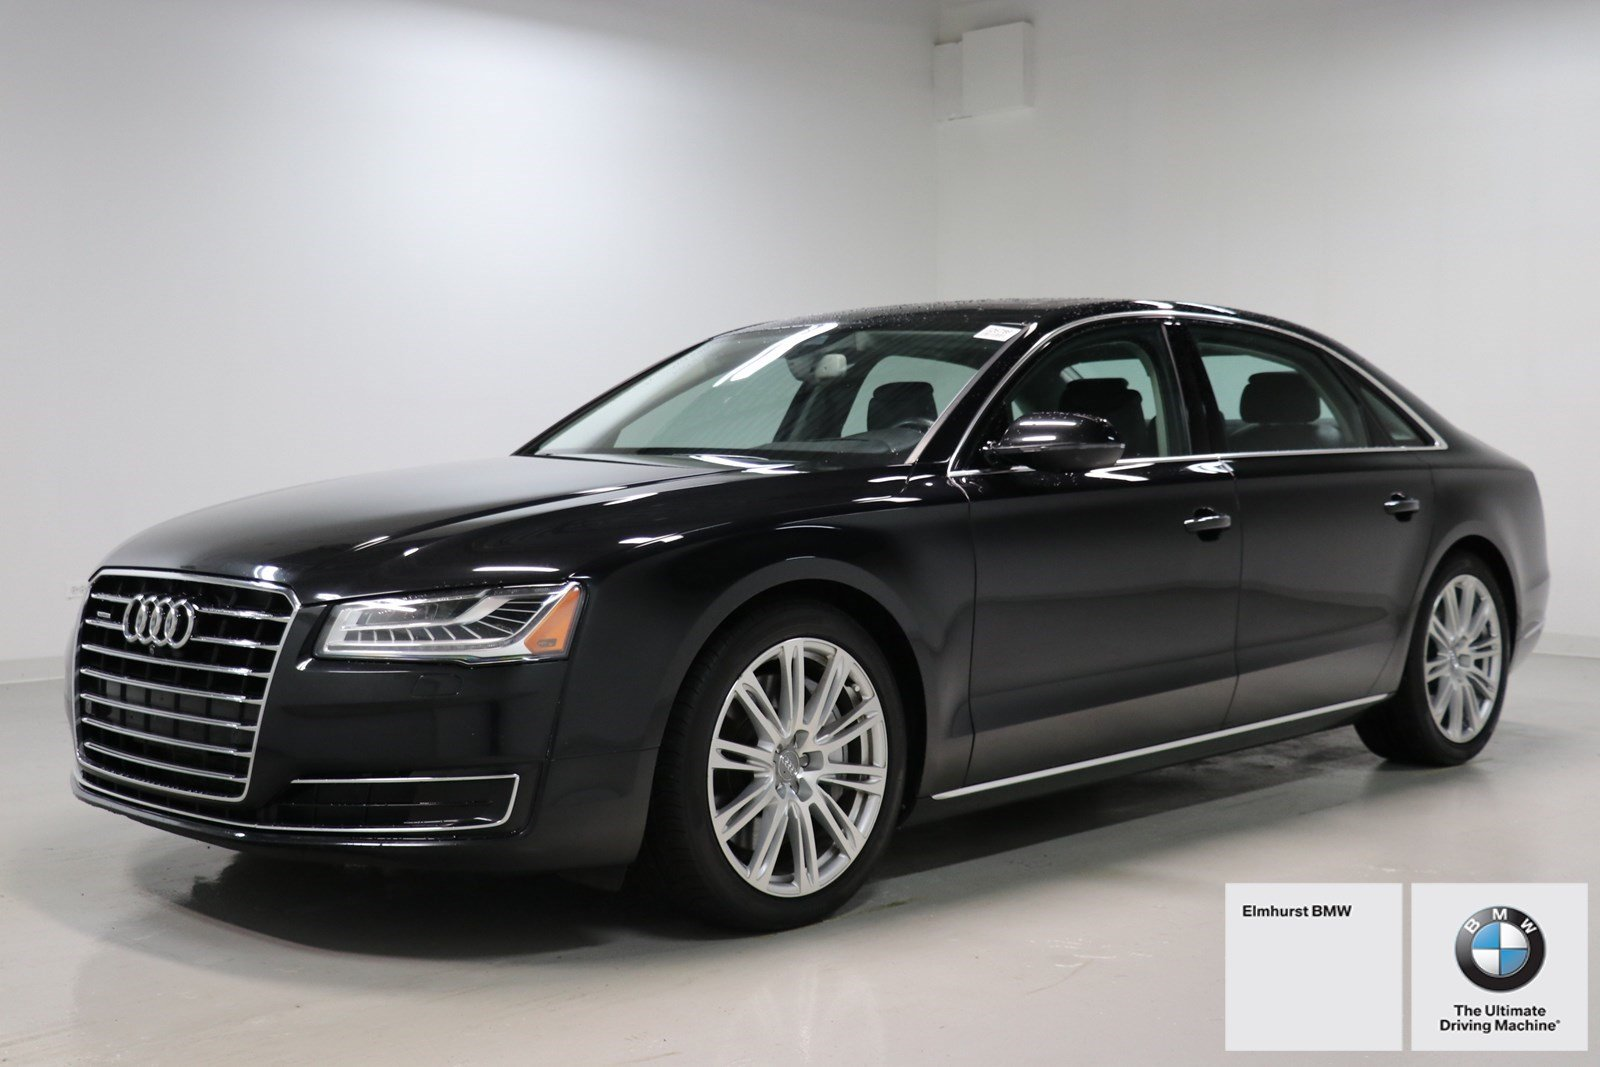 Pre Owned 2015 Audi A8 L 40t 4dr Car In Elmhurst J2678p Elmhurst Bmw